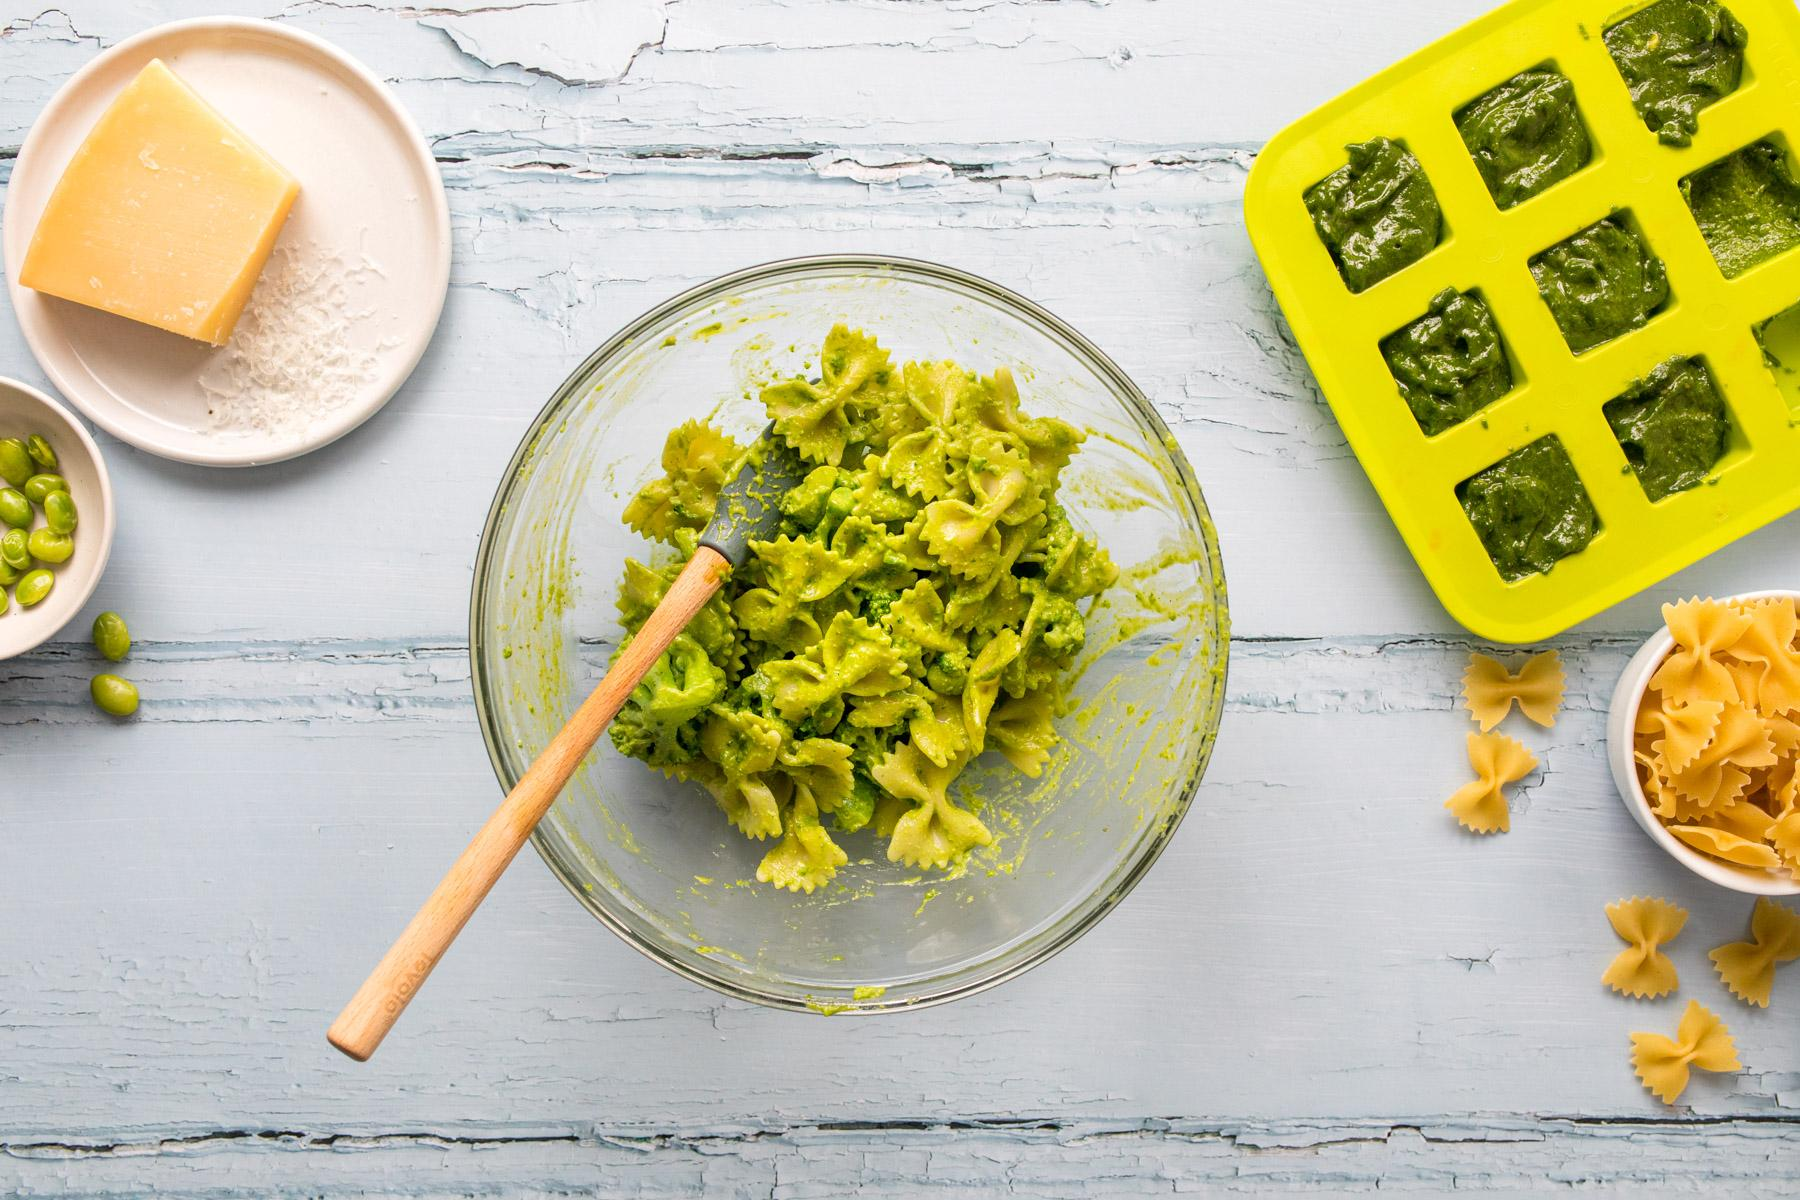 bow tie pasta with pesto in a glass bowl